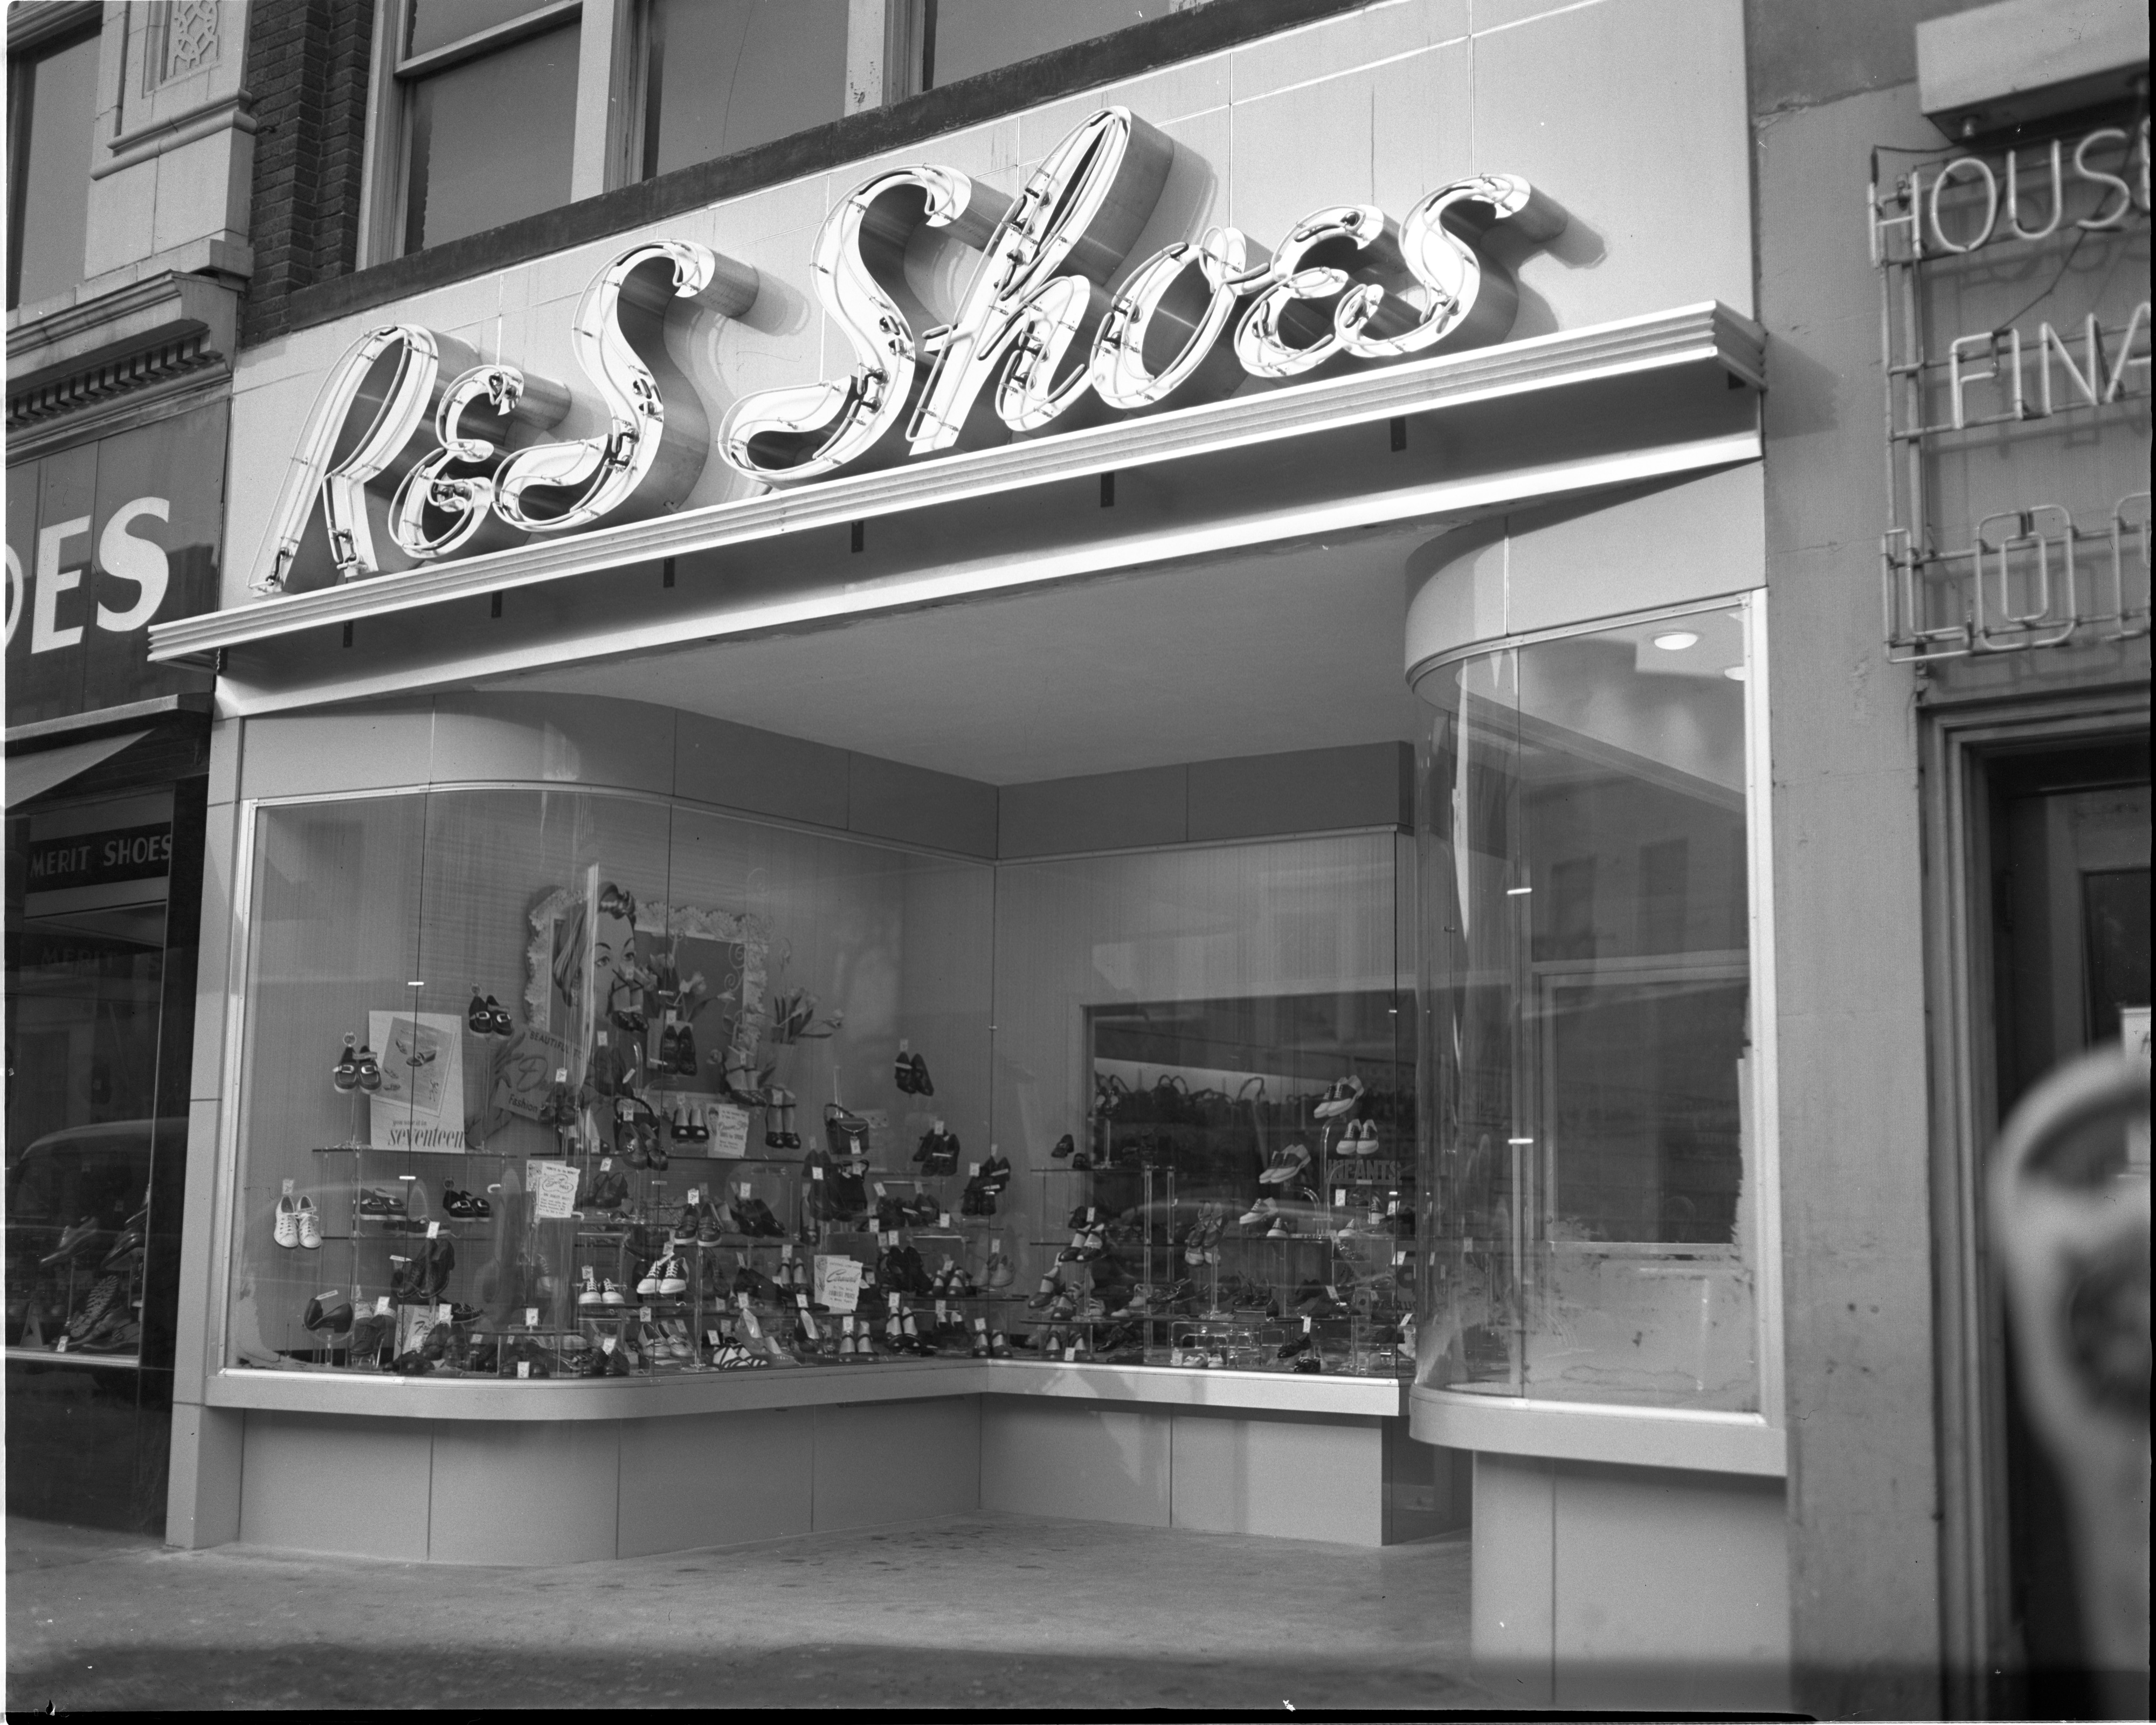 R & S Shoe Store - 108 S. Main Street, February 1950 image